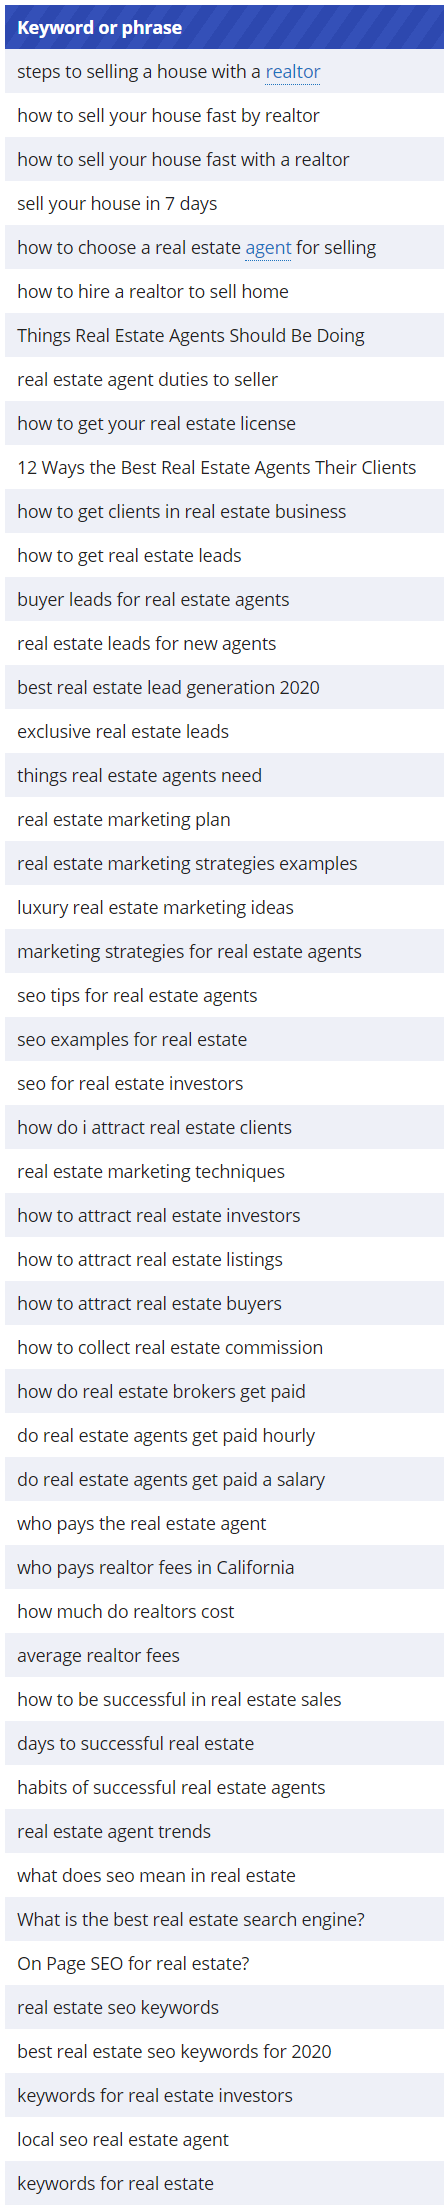 realtyna real estate seo keywords 2020 3